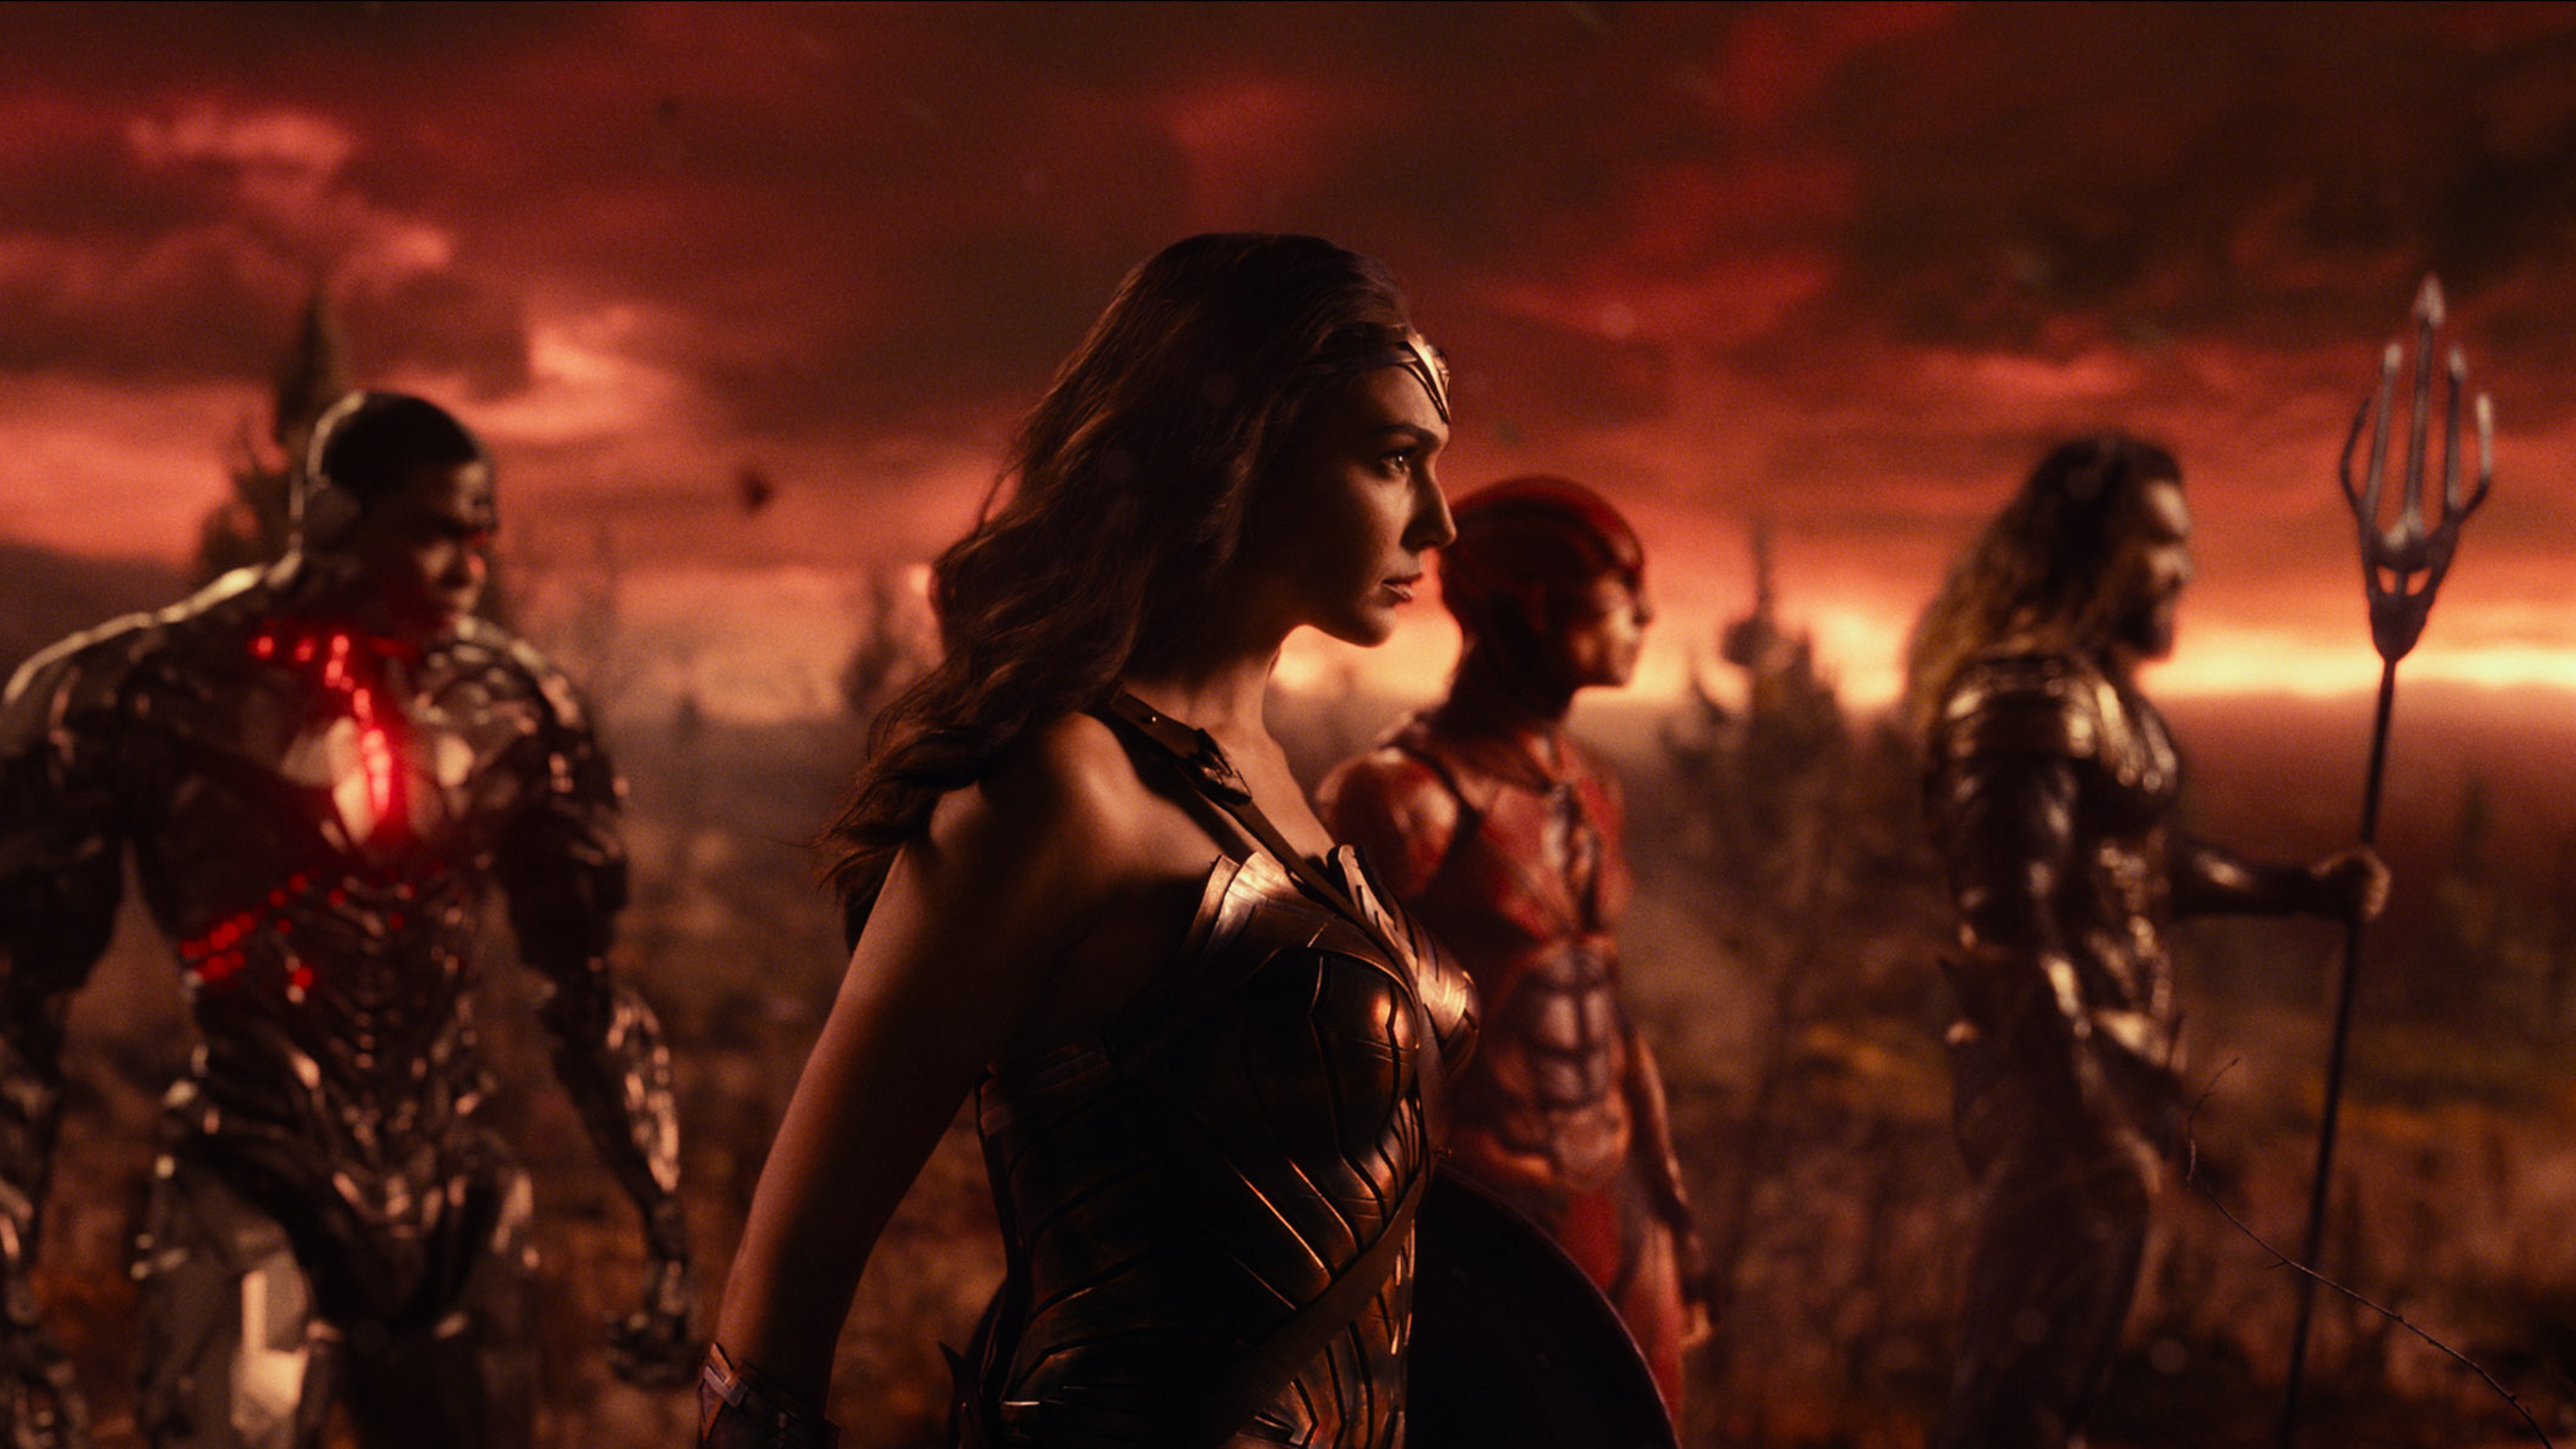 Aquaman Cyborg Flash Gal Gadot And Wonder Woman Justice League Wallpaper Background